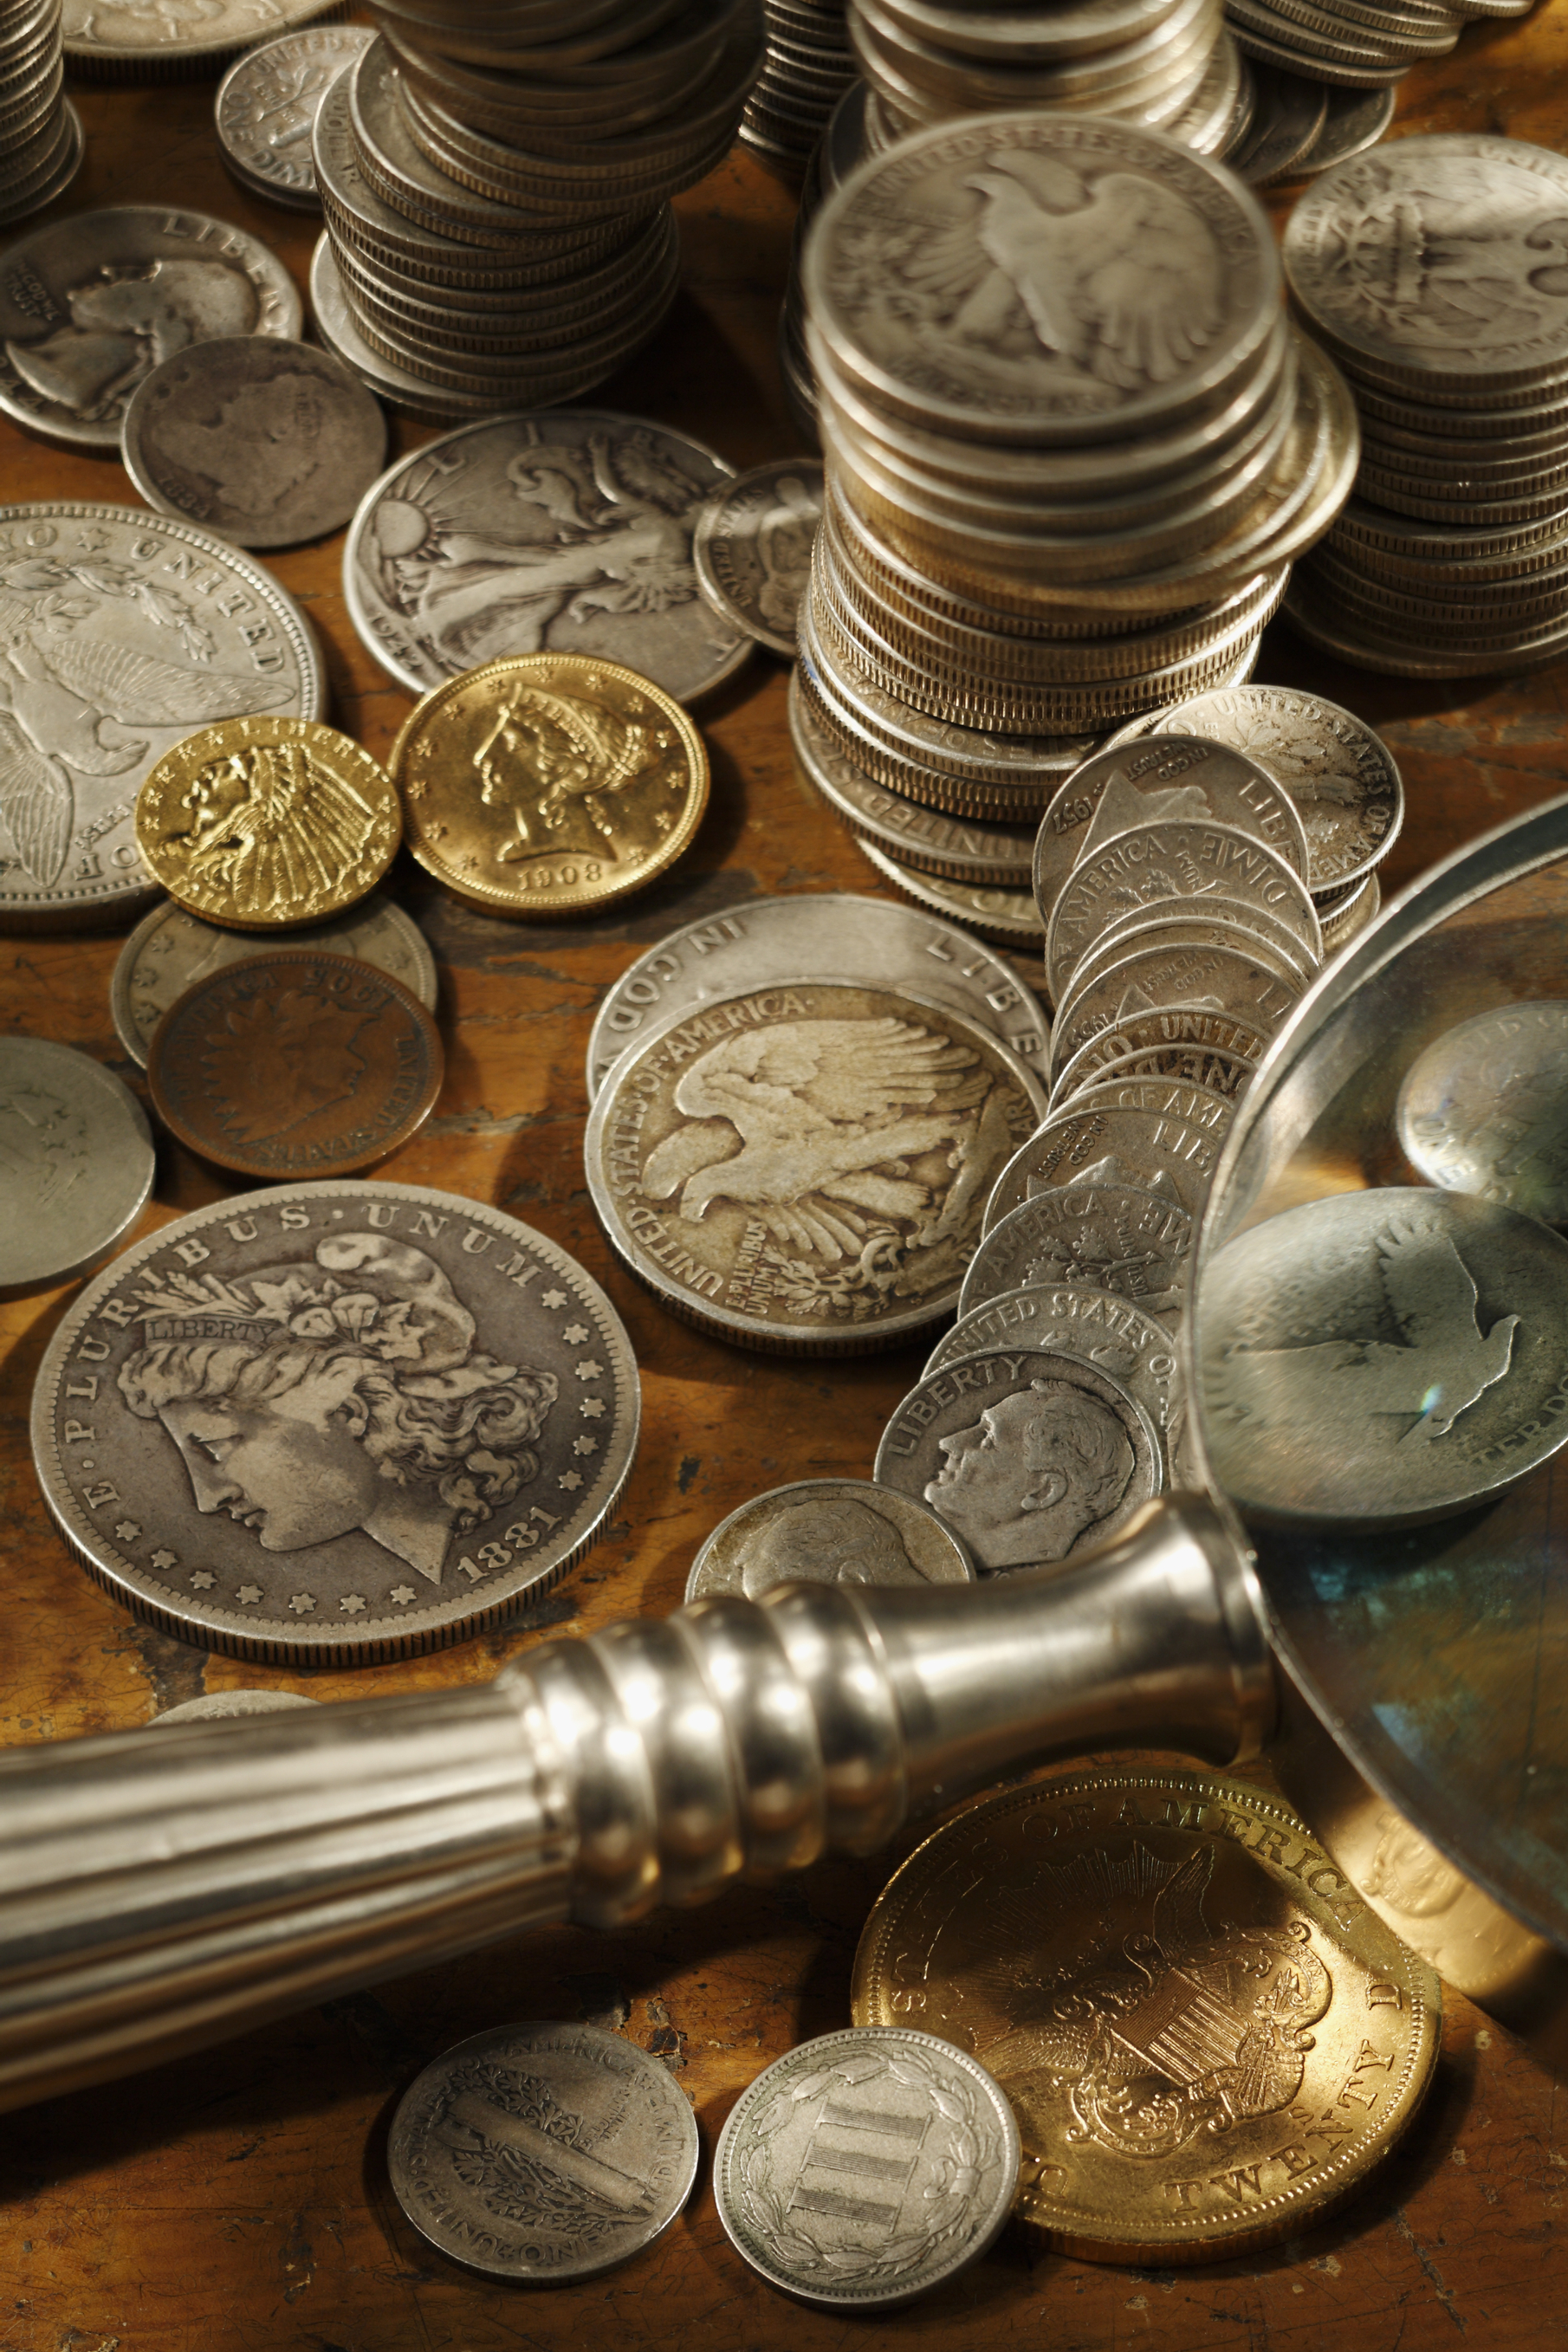 Silver and gold coin collection on a wooden table.  Magnifying glass is quite at home as those collecting usually need a little help spotting the dates and mint marks.  Grading coins is a bit of a science but those who have coins that are not worth the value of having them graded are forced to make those assumptions themselves to determine what a coin is worth.  Shot on a Canon 5D.